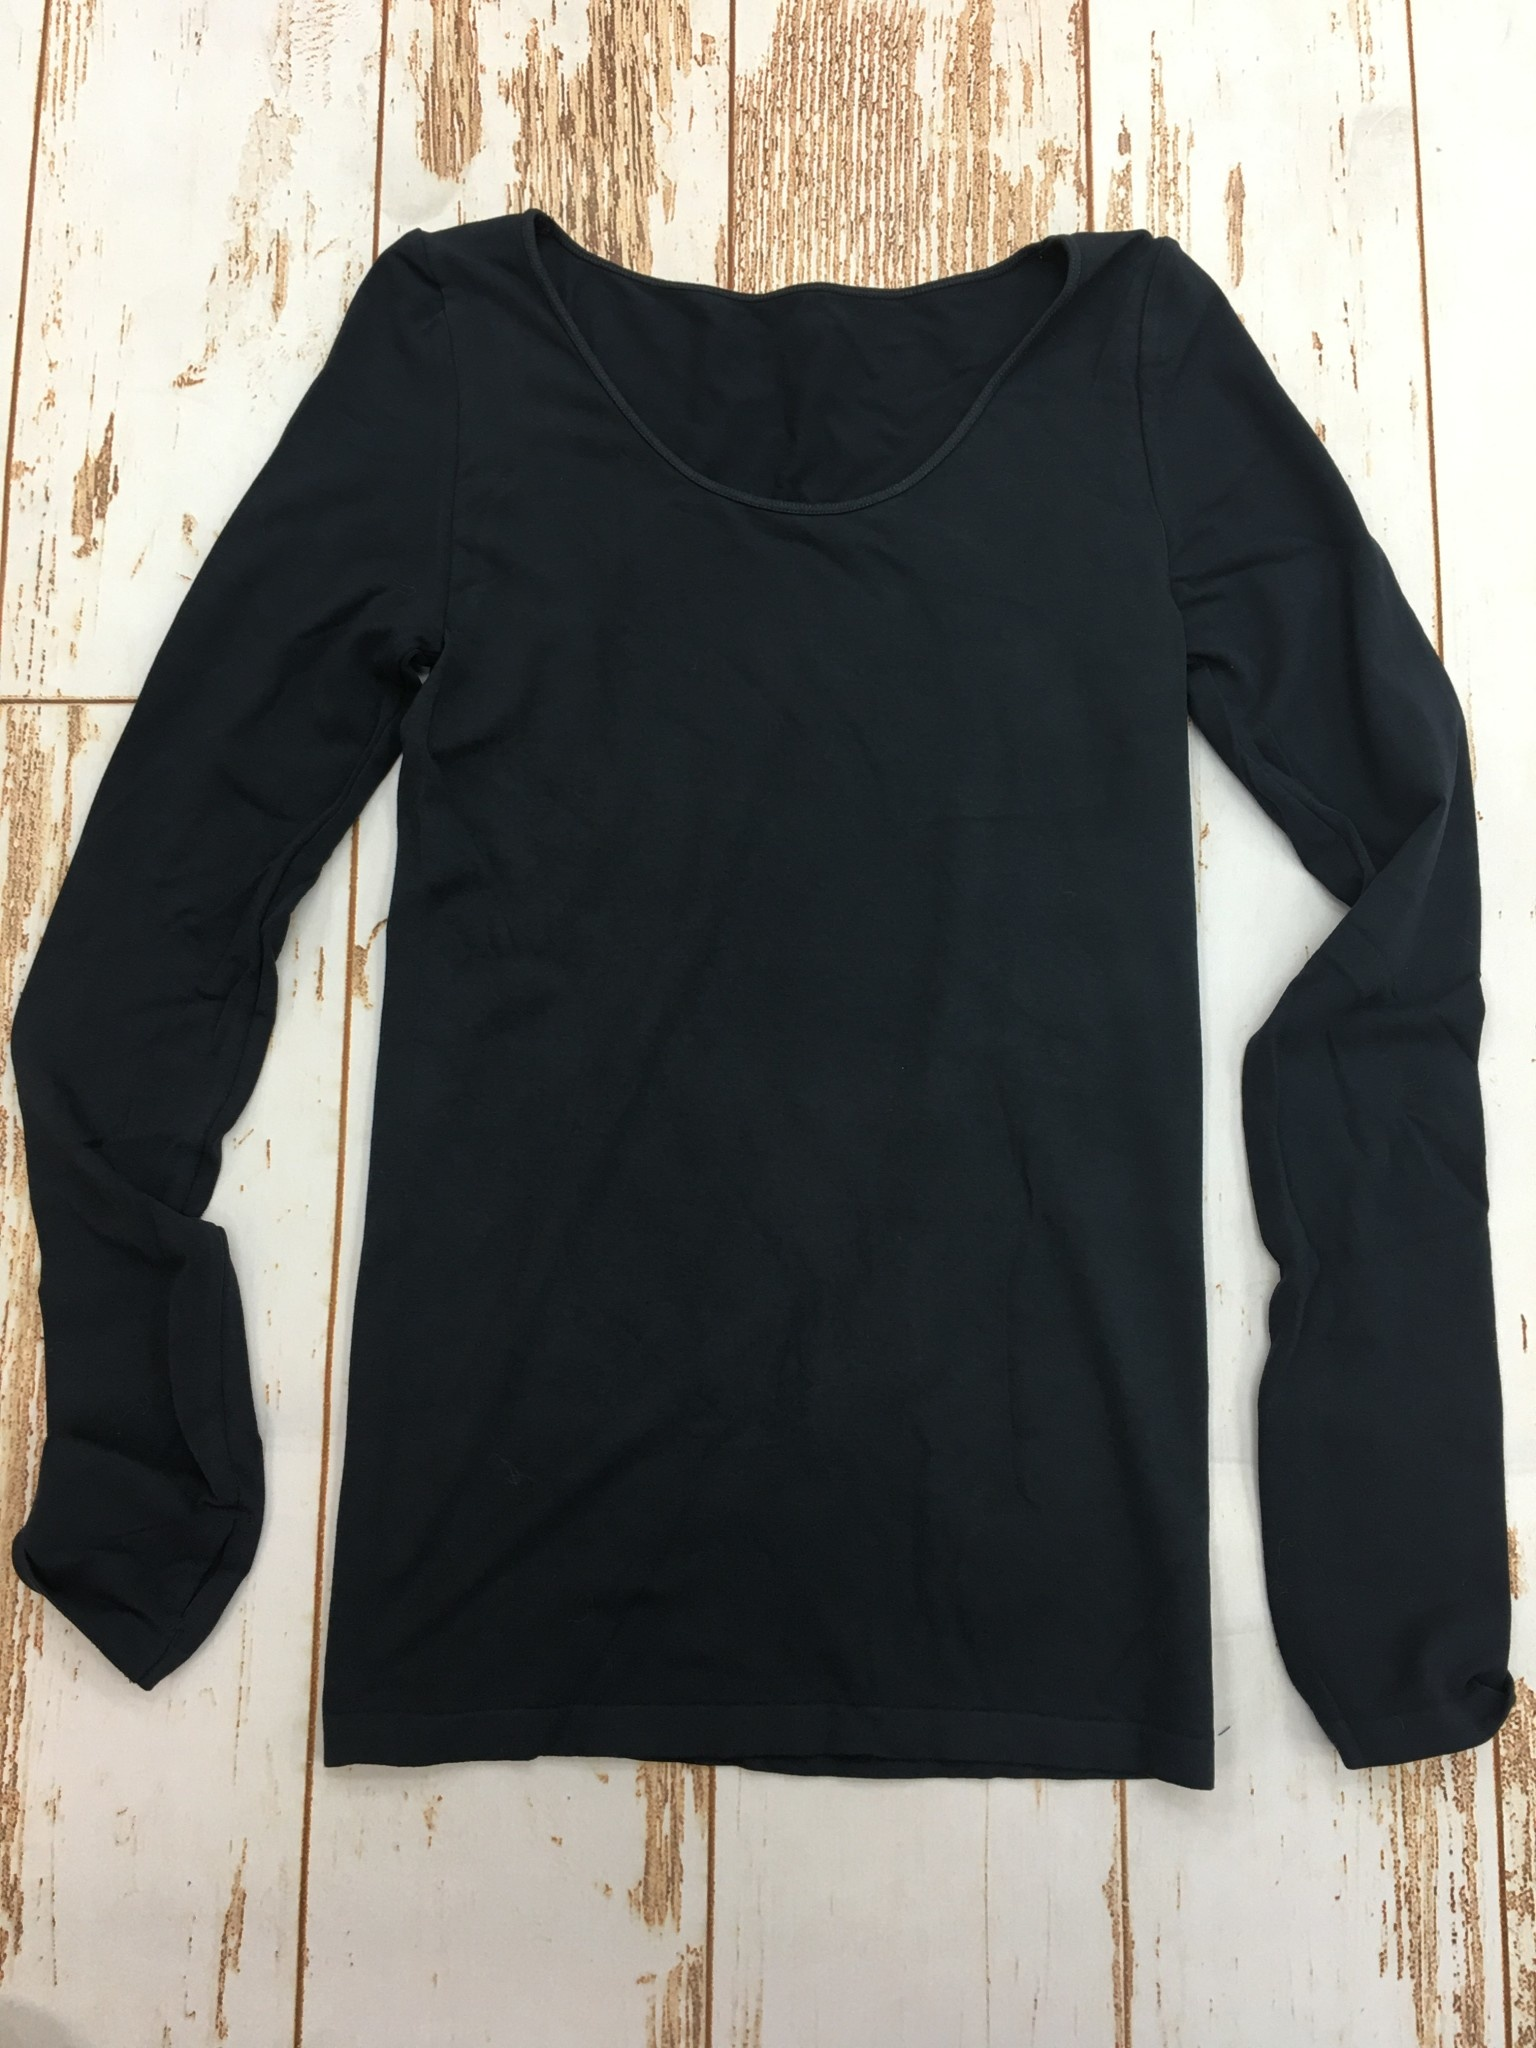 M Rena Long Sleeve Top w/Thumbhole in Ink